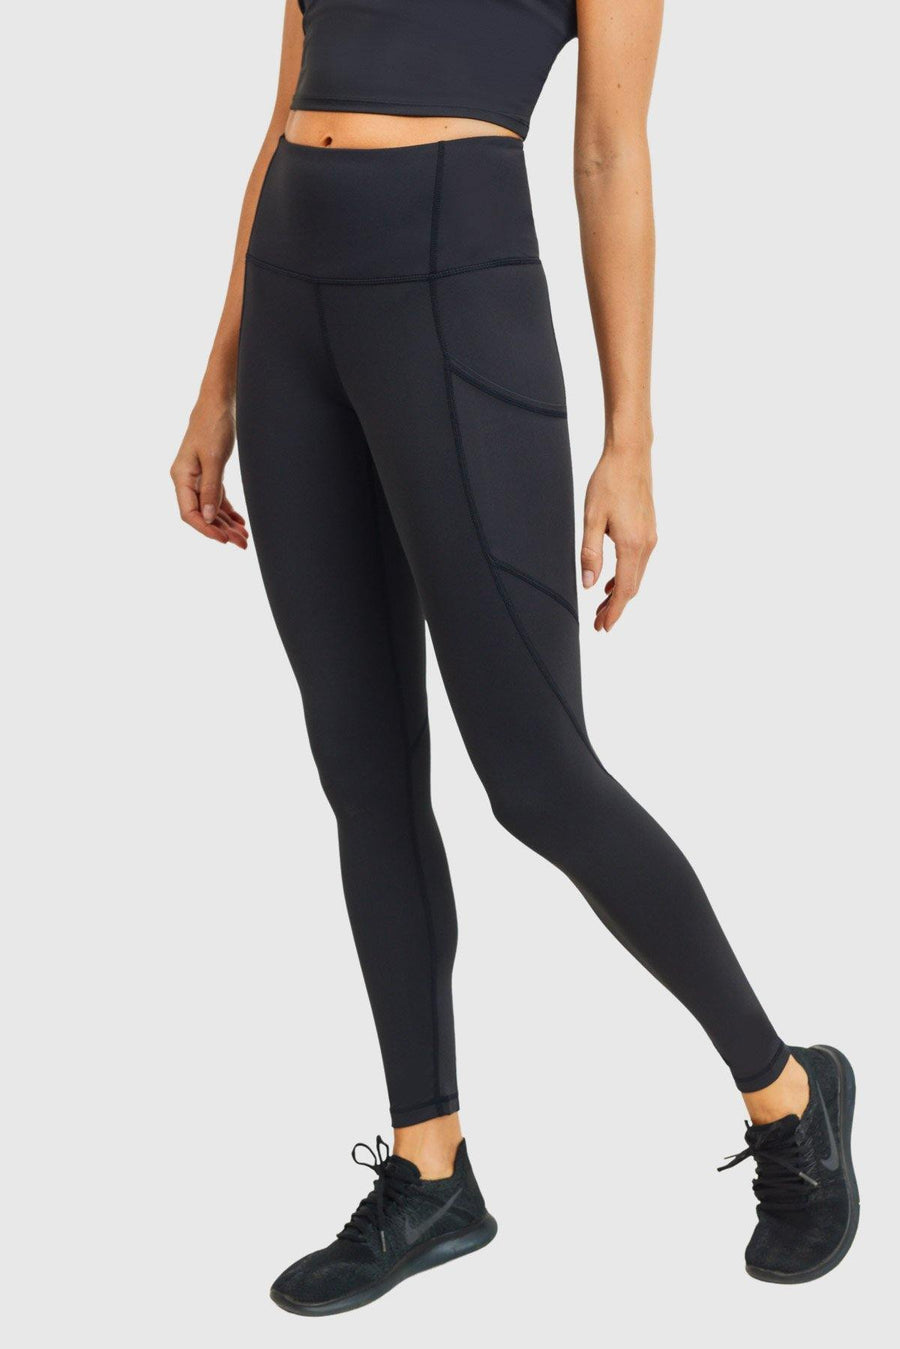 Solid & Slanted Panels Highwaist Leggings-Leggings-Mono B Athleisure-S-Black-Mono B Athleisure